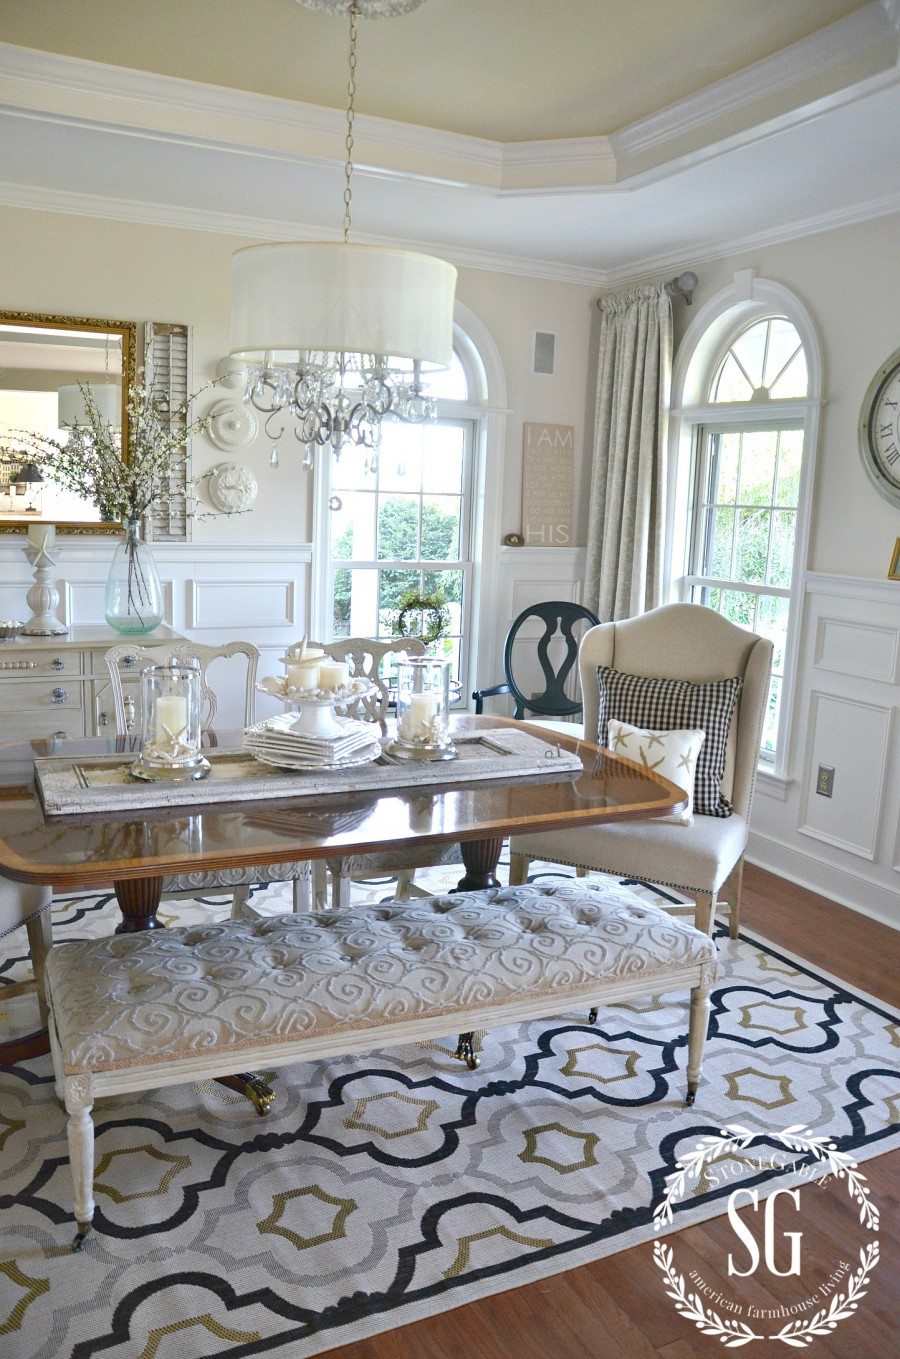 SUMMER HOME TOUR-Dining room-rug-clock-stonegableblog.com